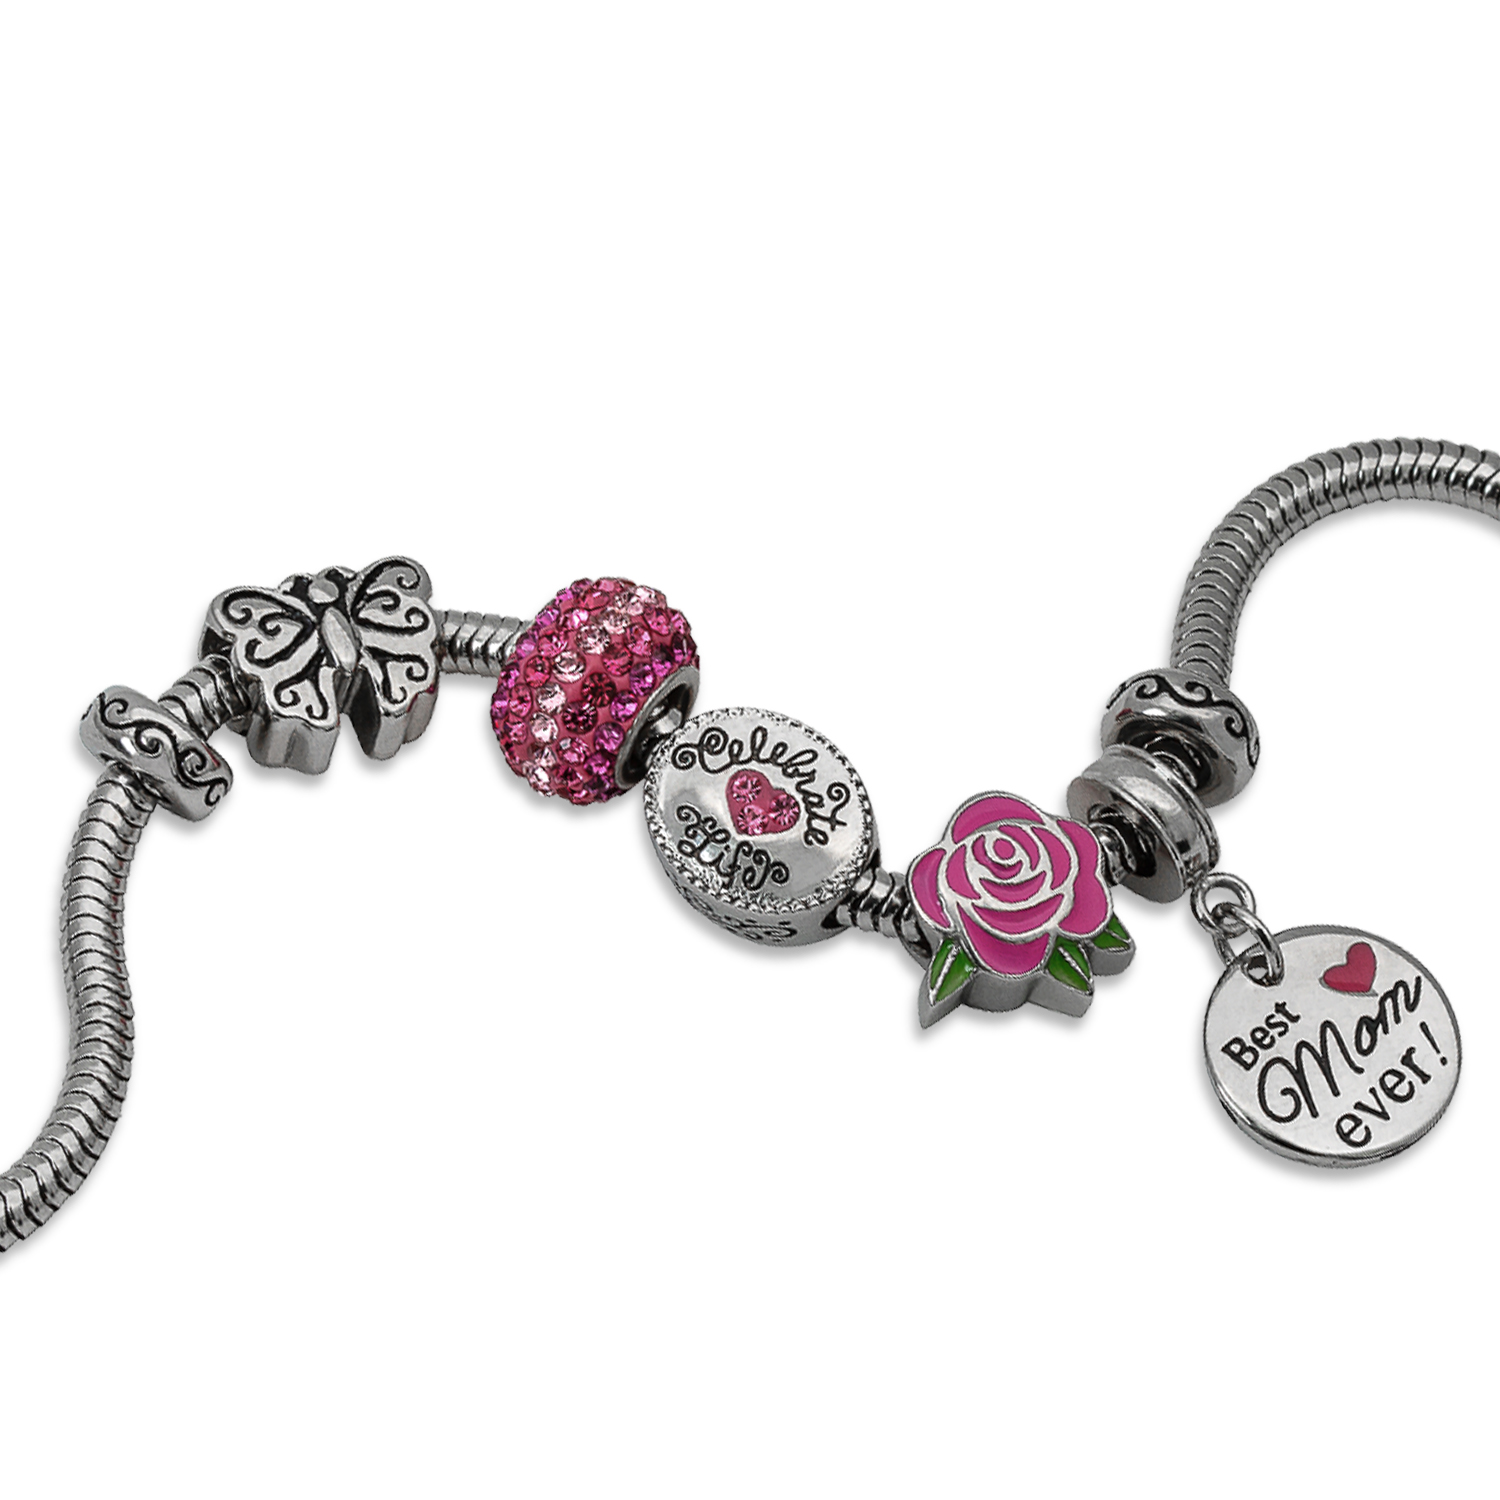 "Connections from Hallmark Stainless Steel Limited Edition ""Best Mom Ever"" Charm Bracelet Set"